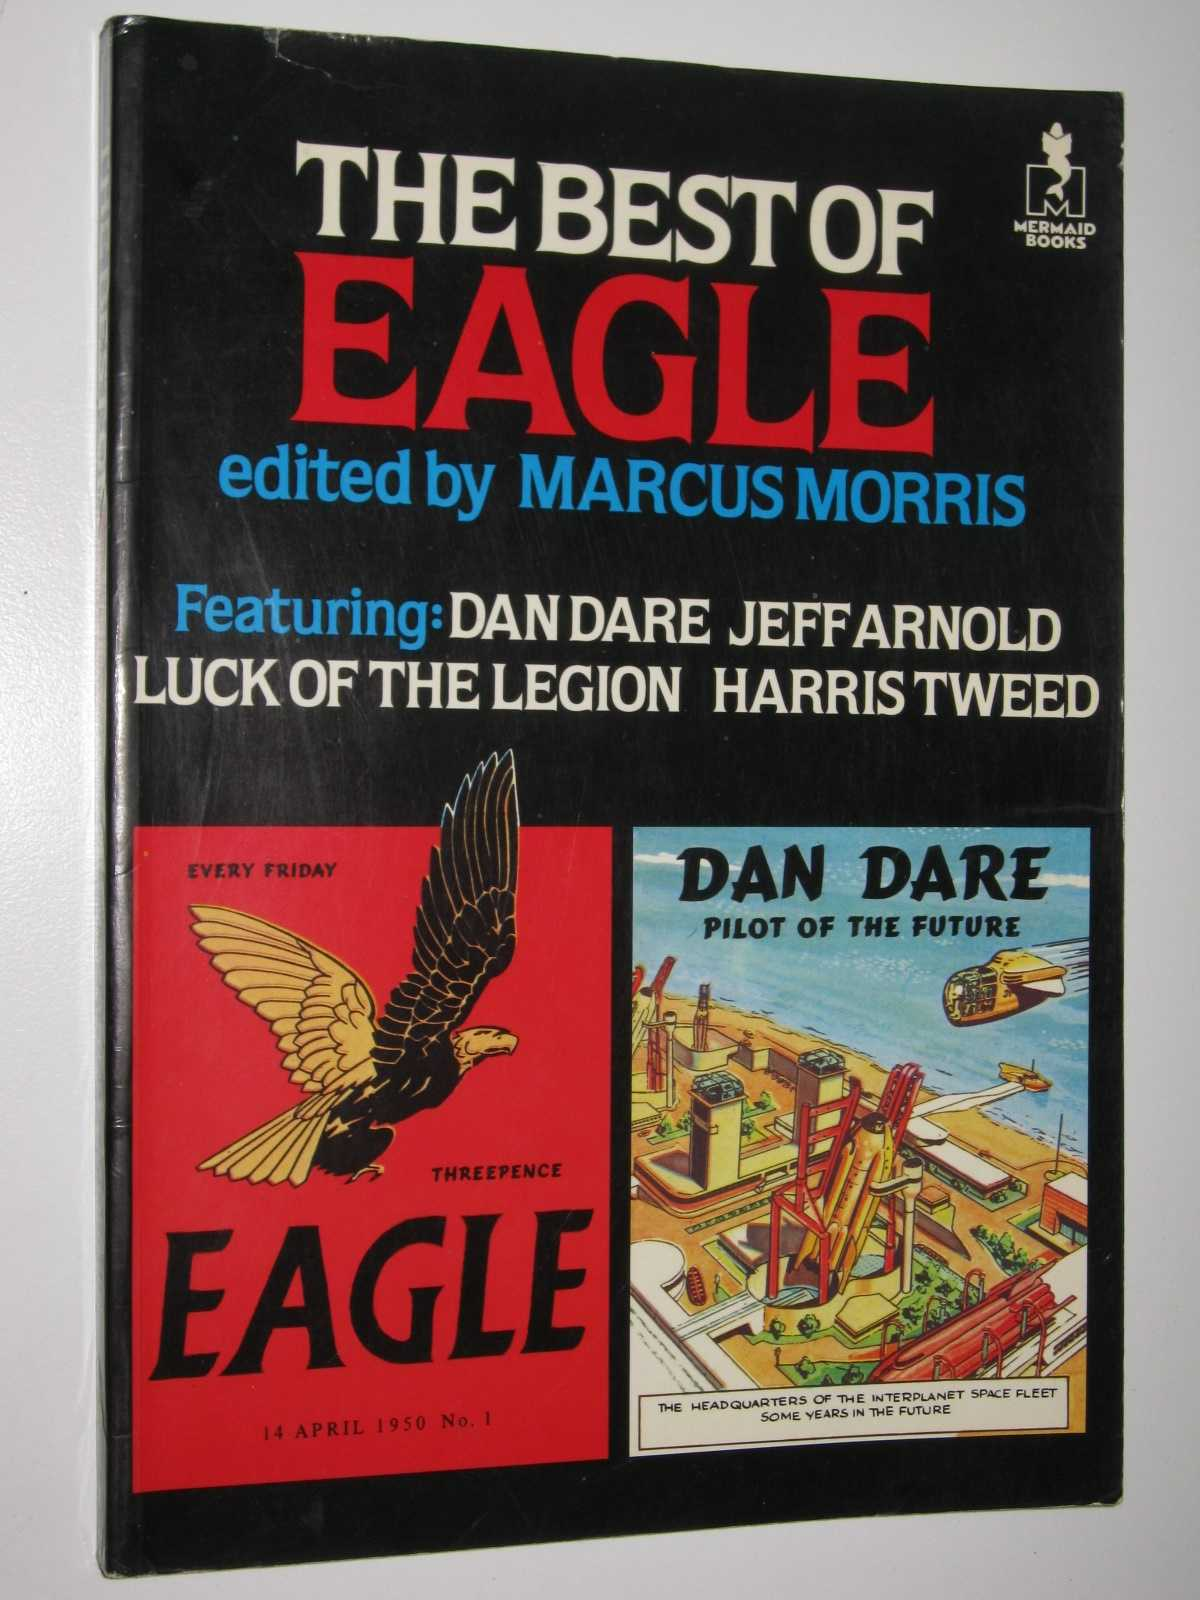 The Best of Eagle, Morris, Marcus (edited)